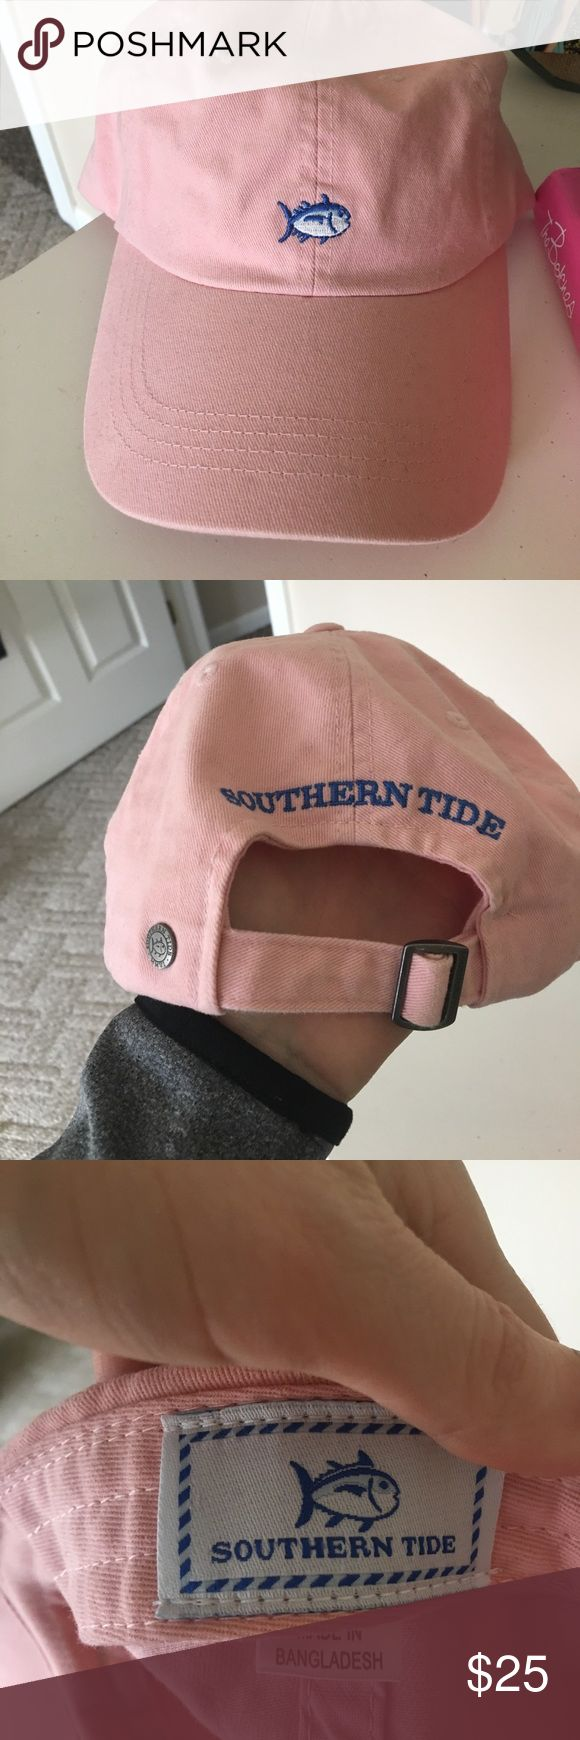 Southern tide women's baseball hat Southern tide hat for women. Worn only a few times in great condition and zero stains! Open to reasonable offers ☺ southern tide Accessories Hats